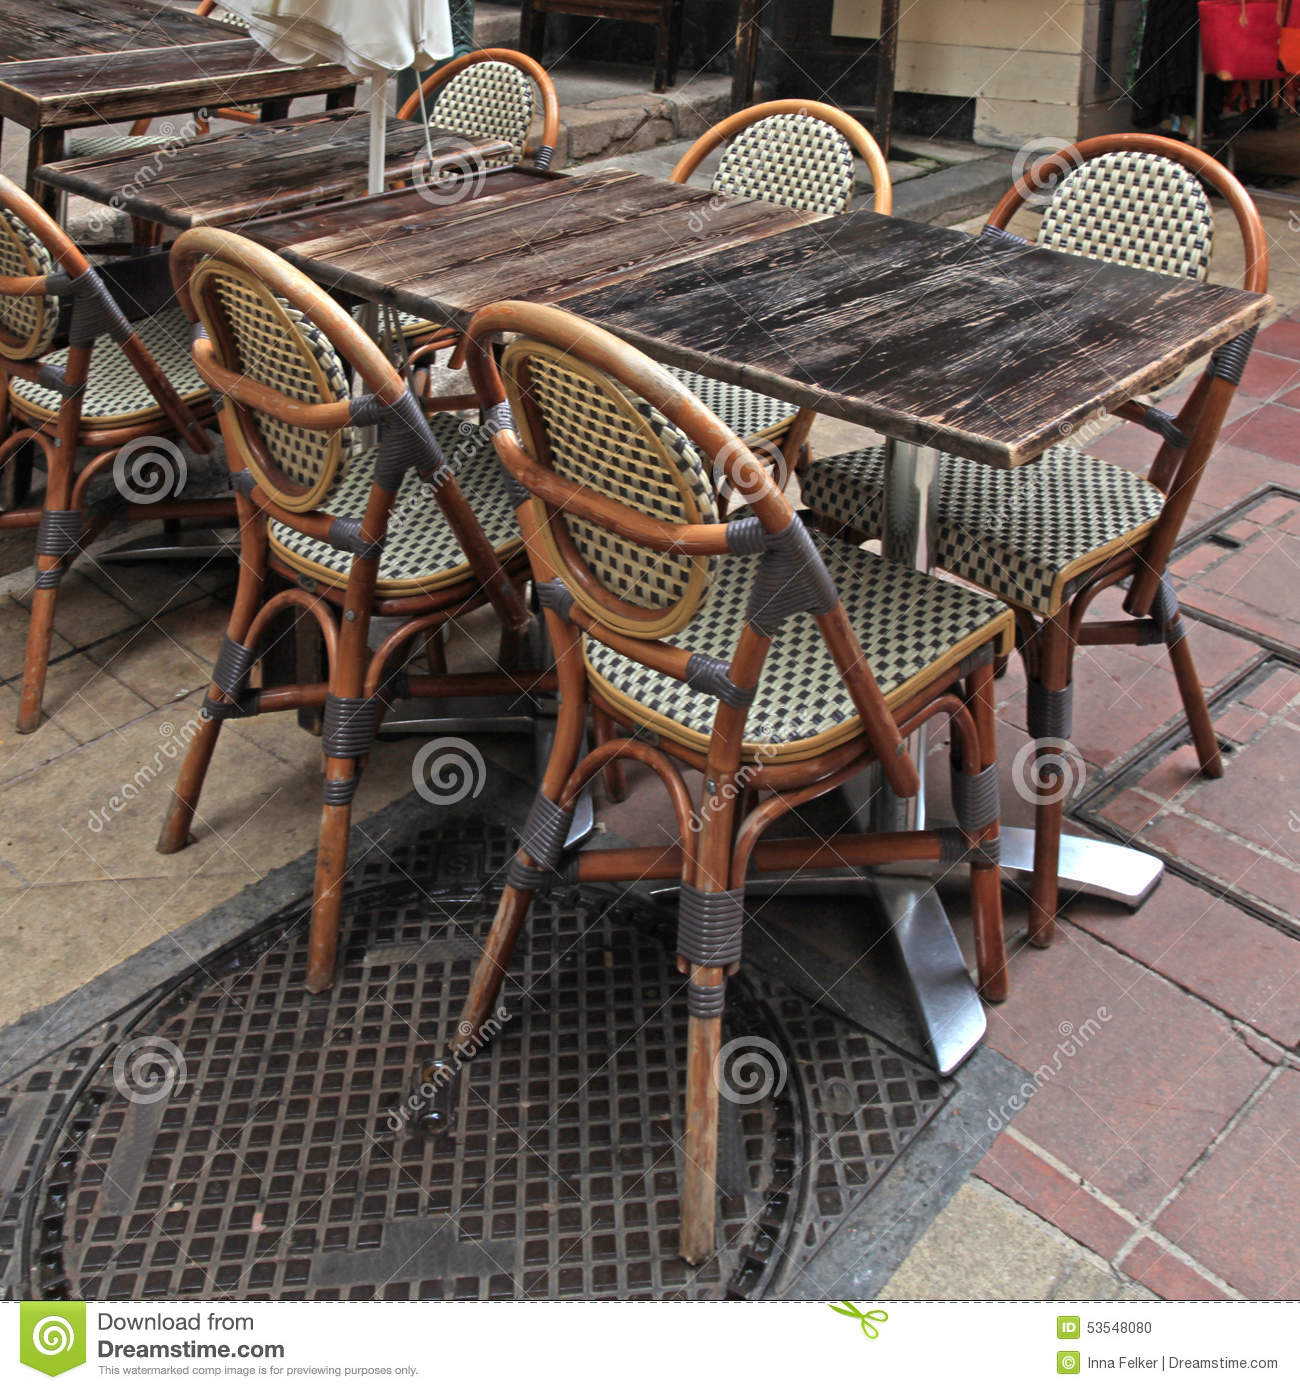 paris bistro chairs outdoor lilly pulitzer chair french cafe nice stock photo image of diner